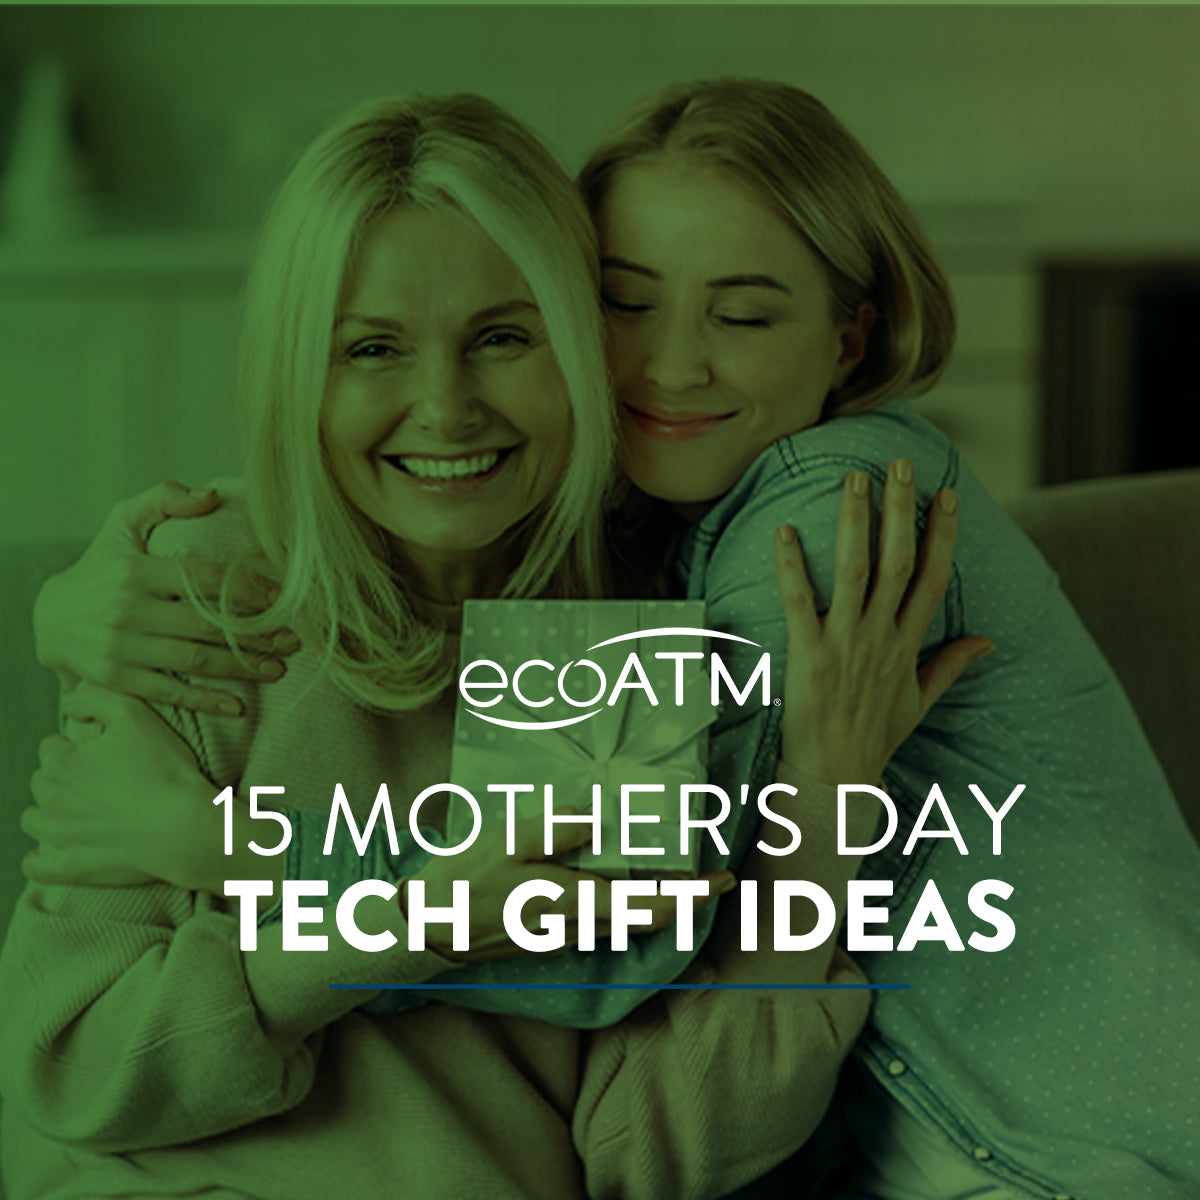 mother's day tech gift ideas